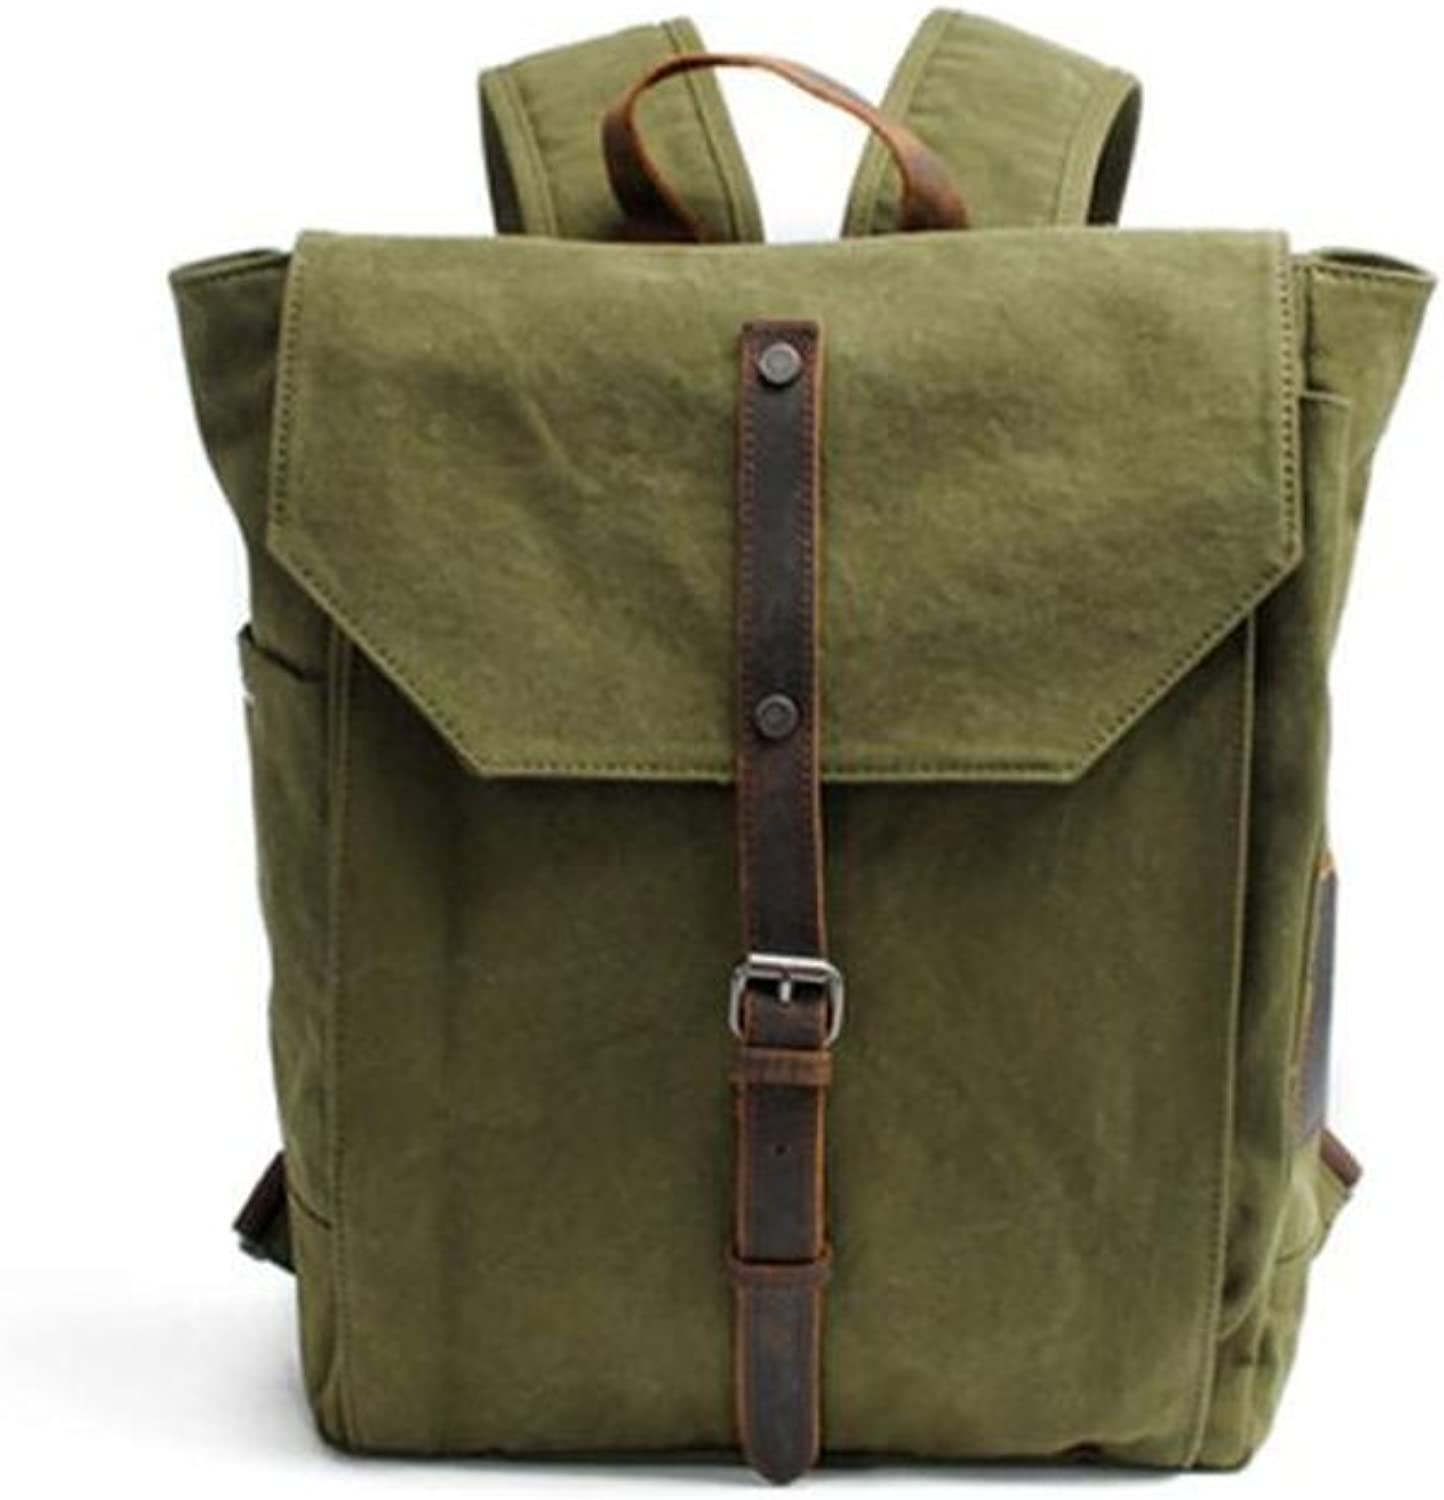 Neutral Rucksack Backpack Unisex Laptop Backpack College School Men and Women Outdoor Travel Camping Hiking (Army Green)